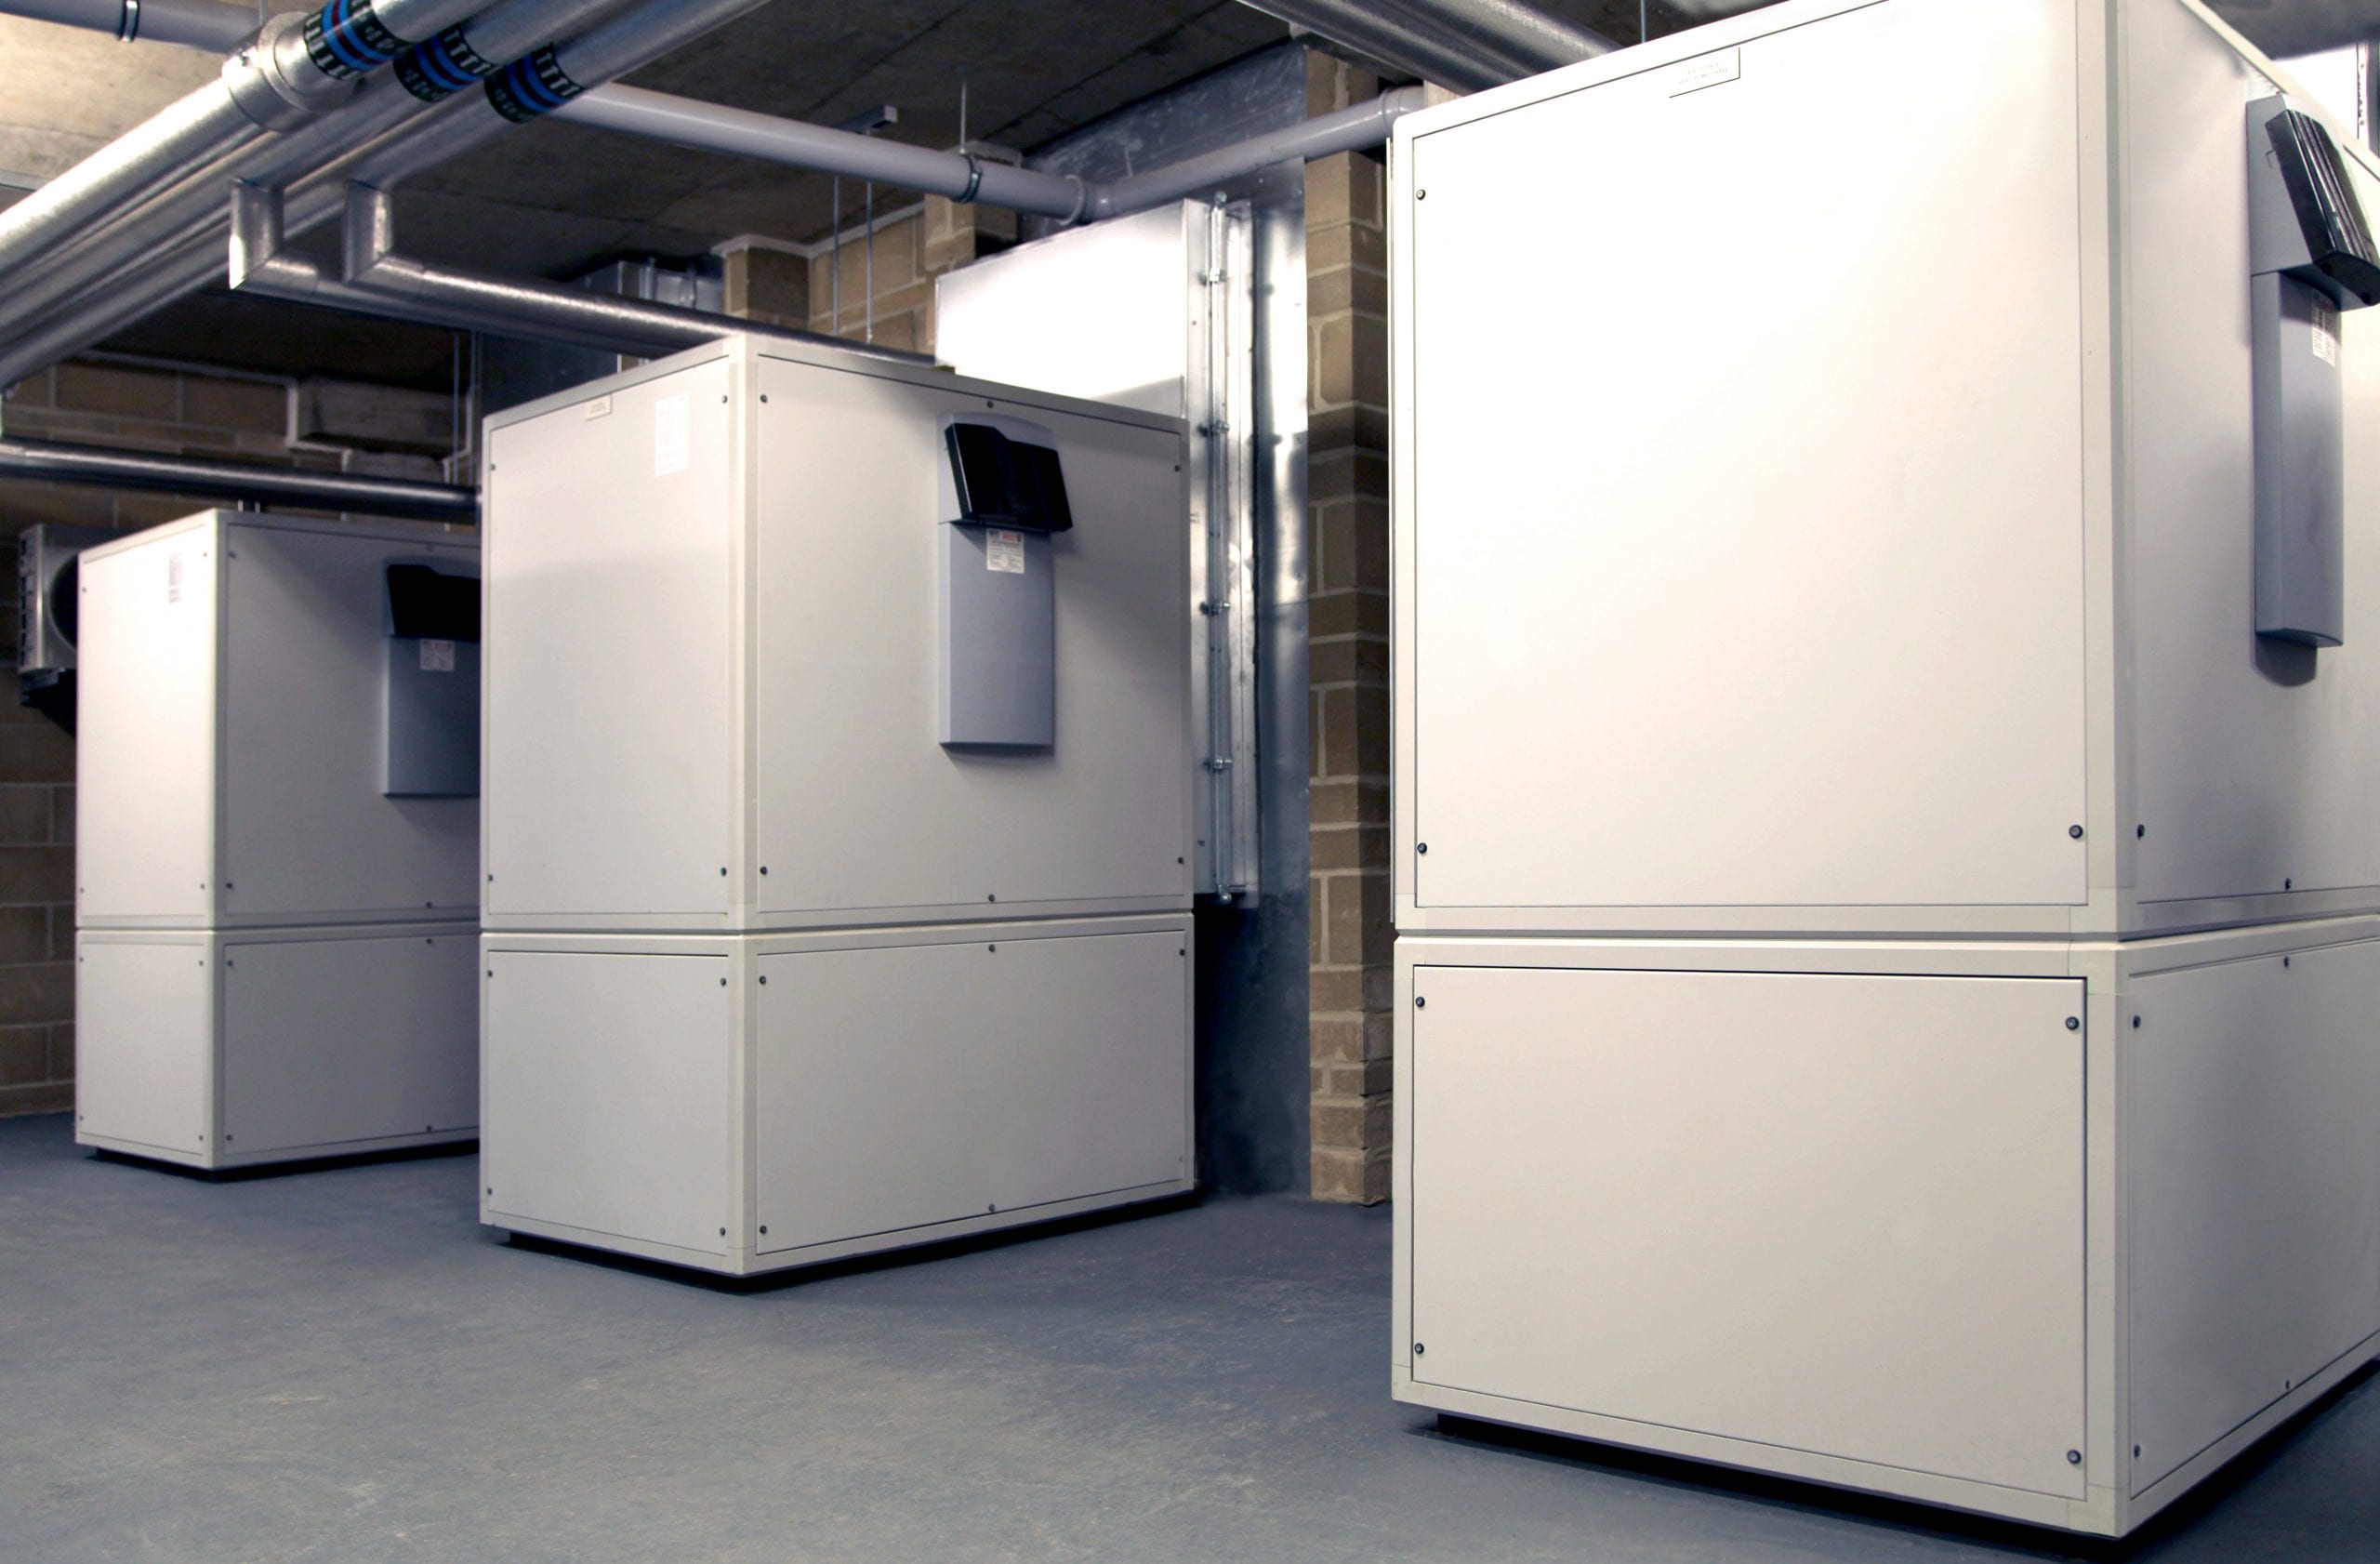 Popular - Air source heat pumps are the choice for student accomodation